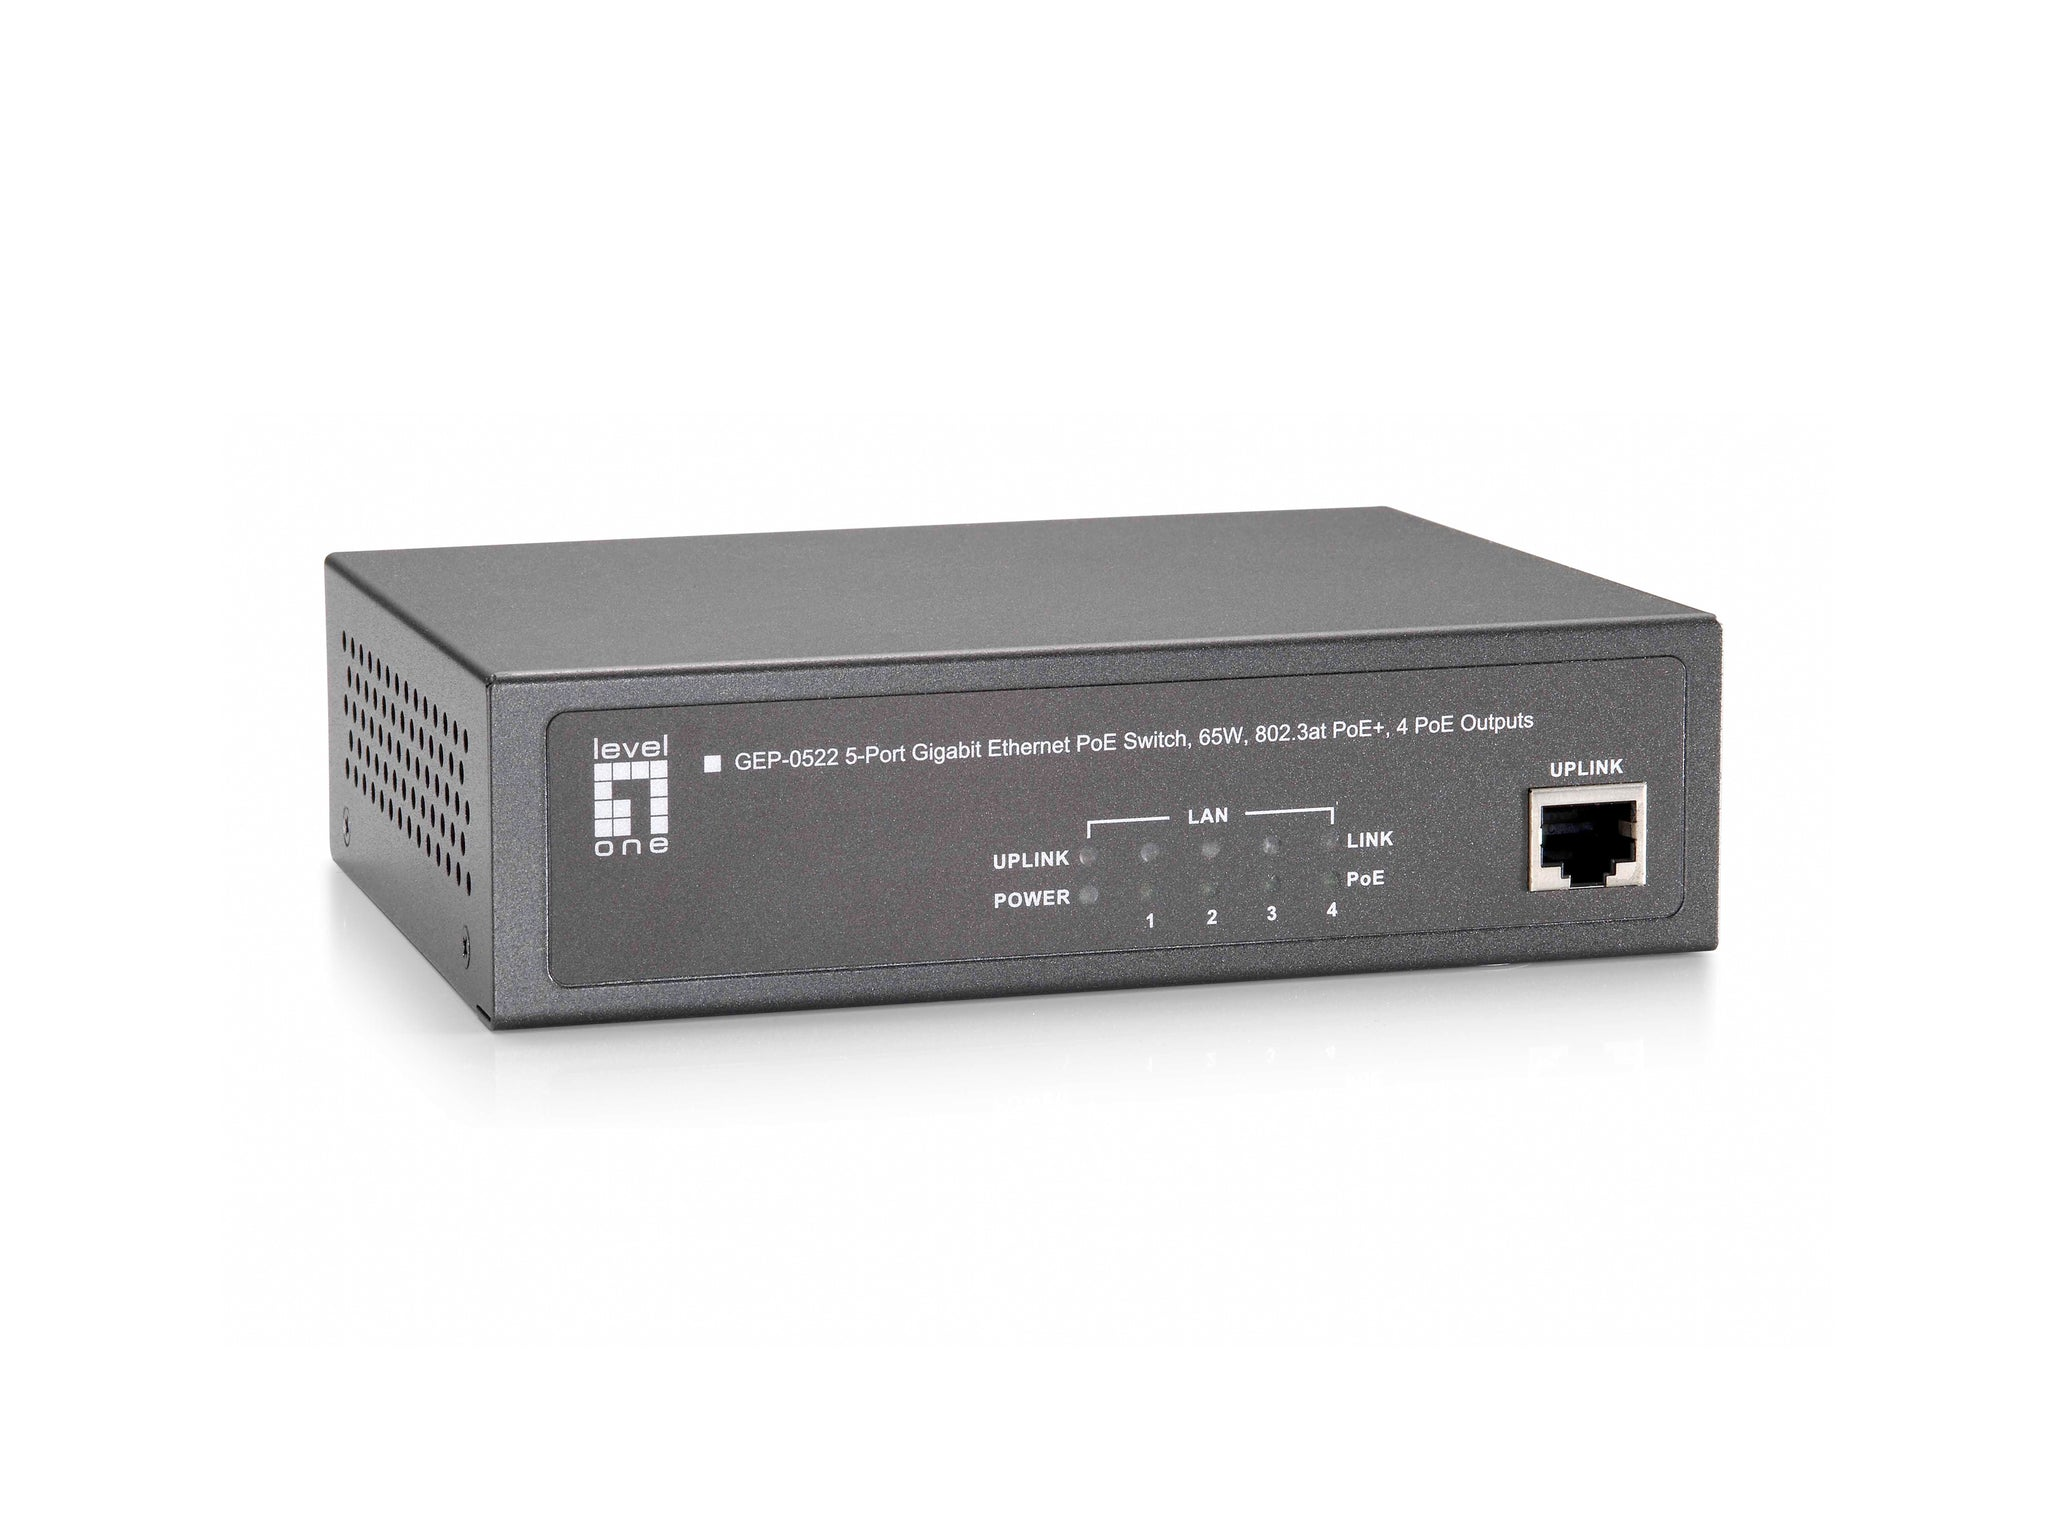 GEP-0522 5-Port Gigabit PoE Switch, 65W, 802.3at P